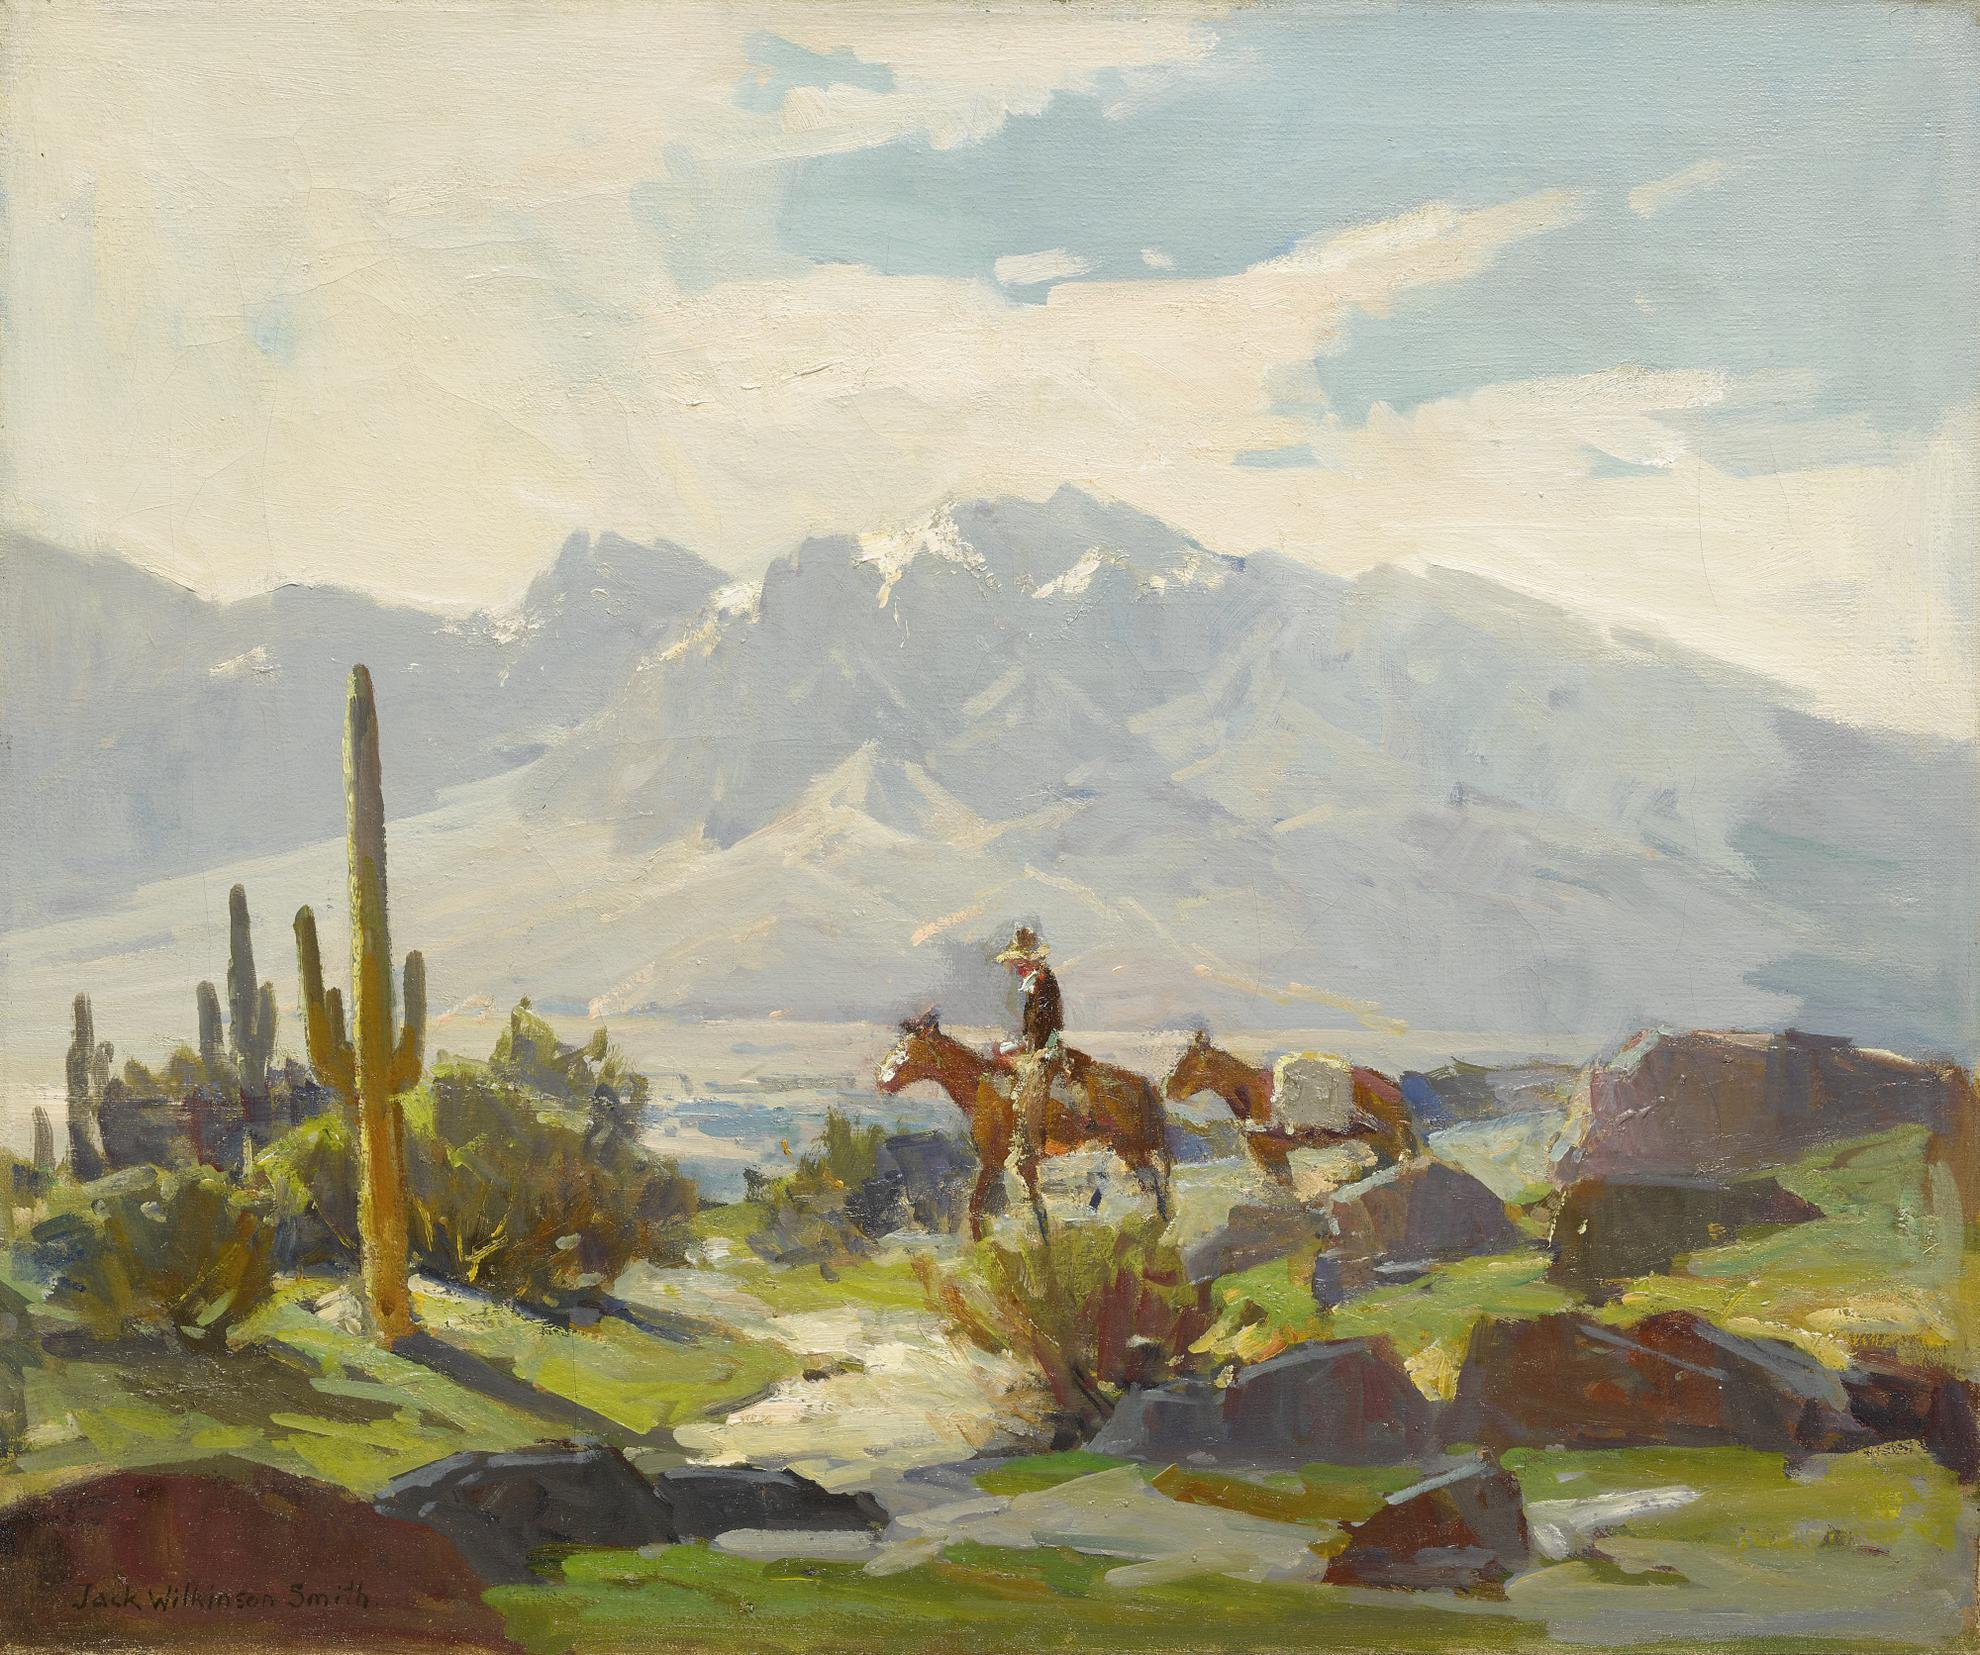 Jack Wilkinson Smith - Horseback With Cactus-